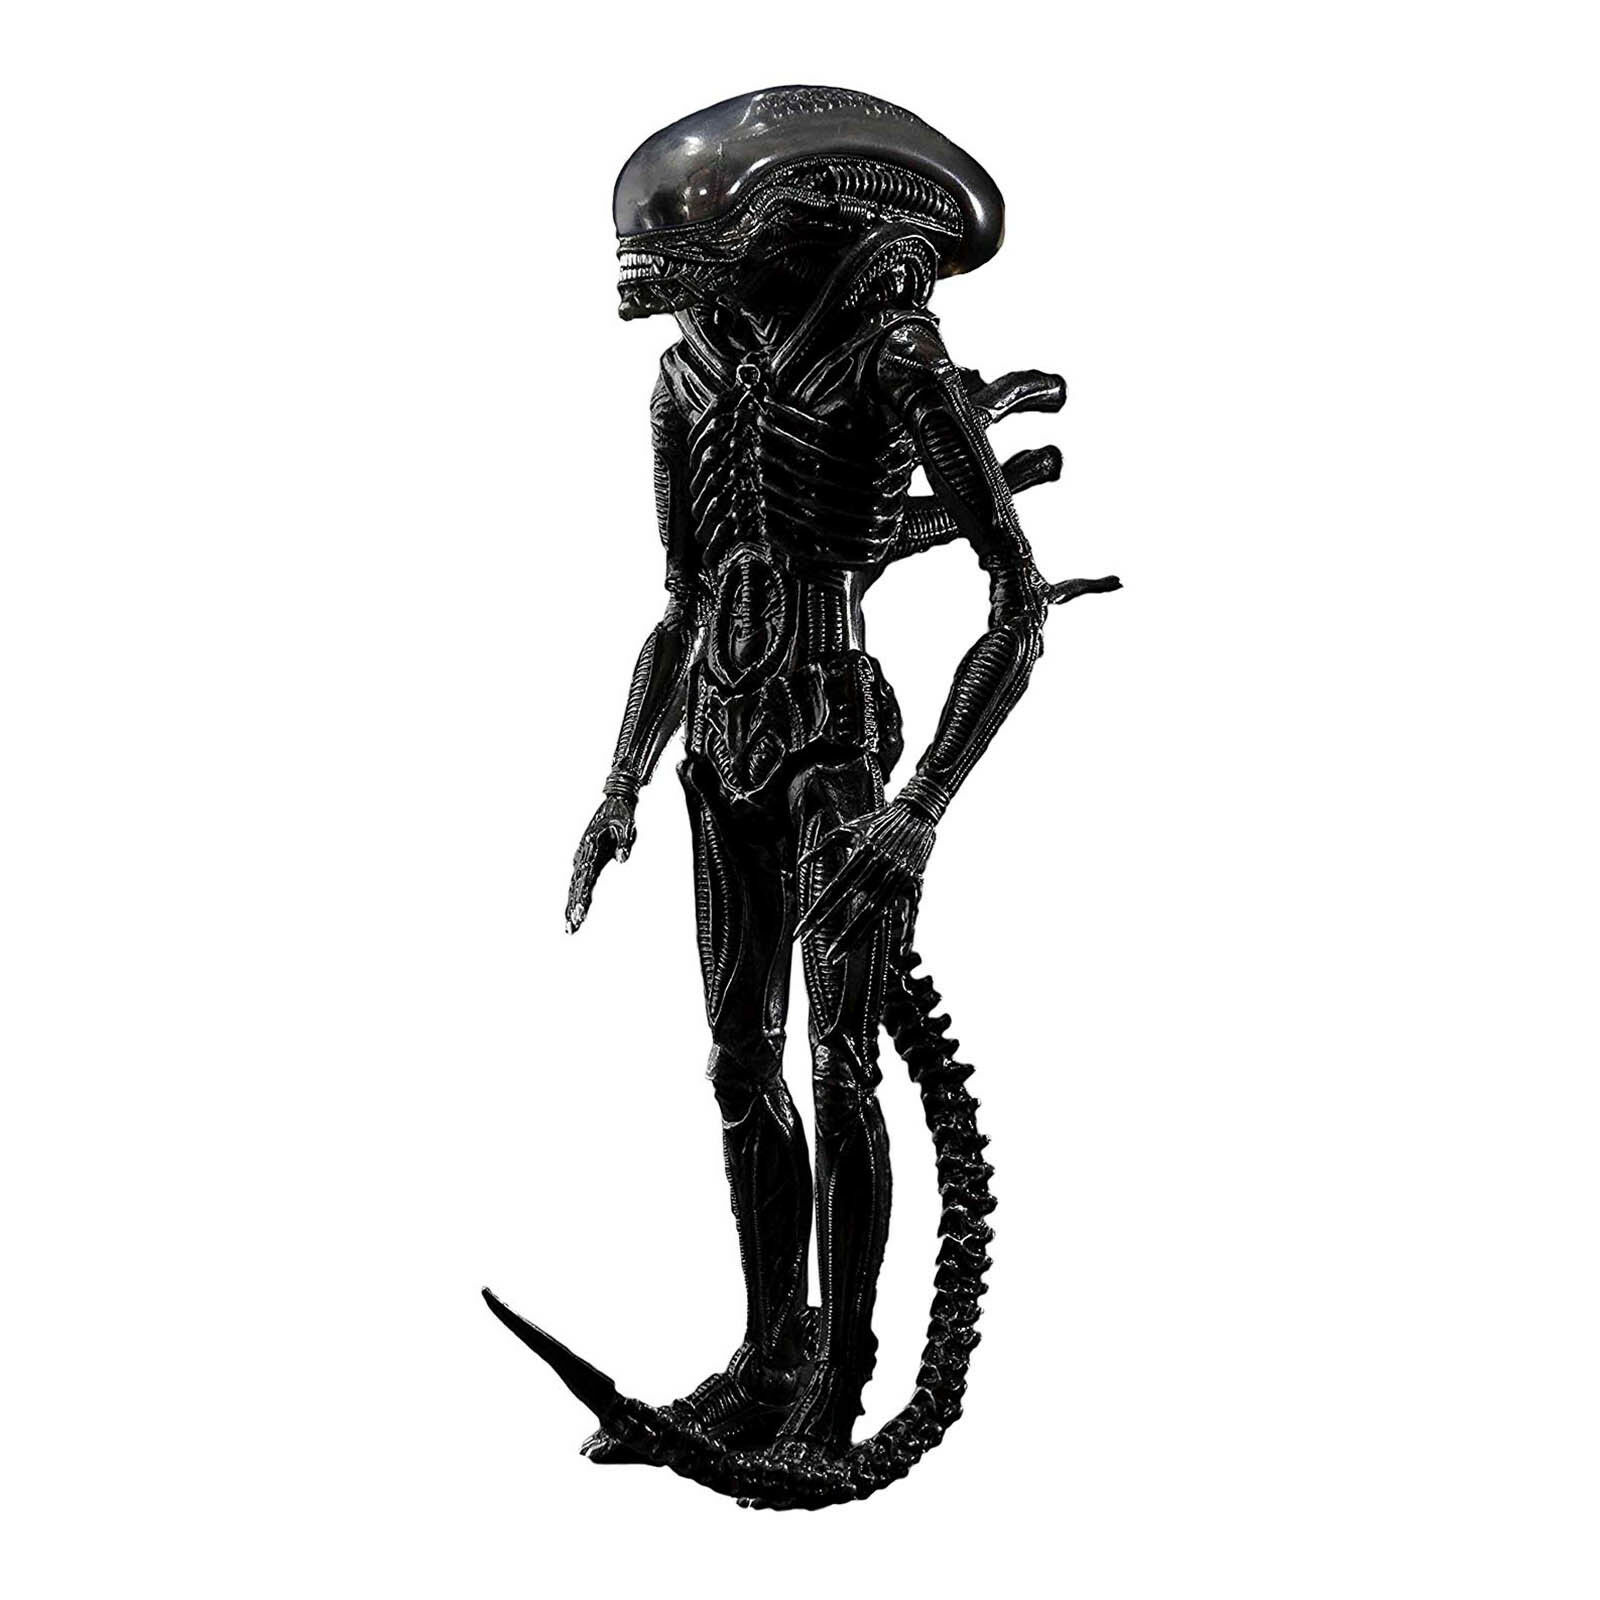 S.H.Monsterarts - Alien - Alien Big Chap